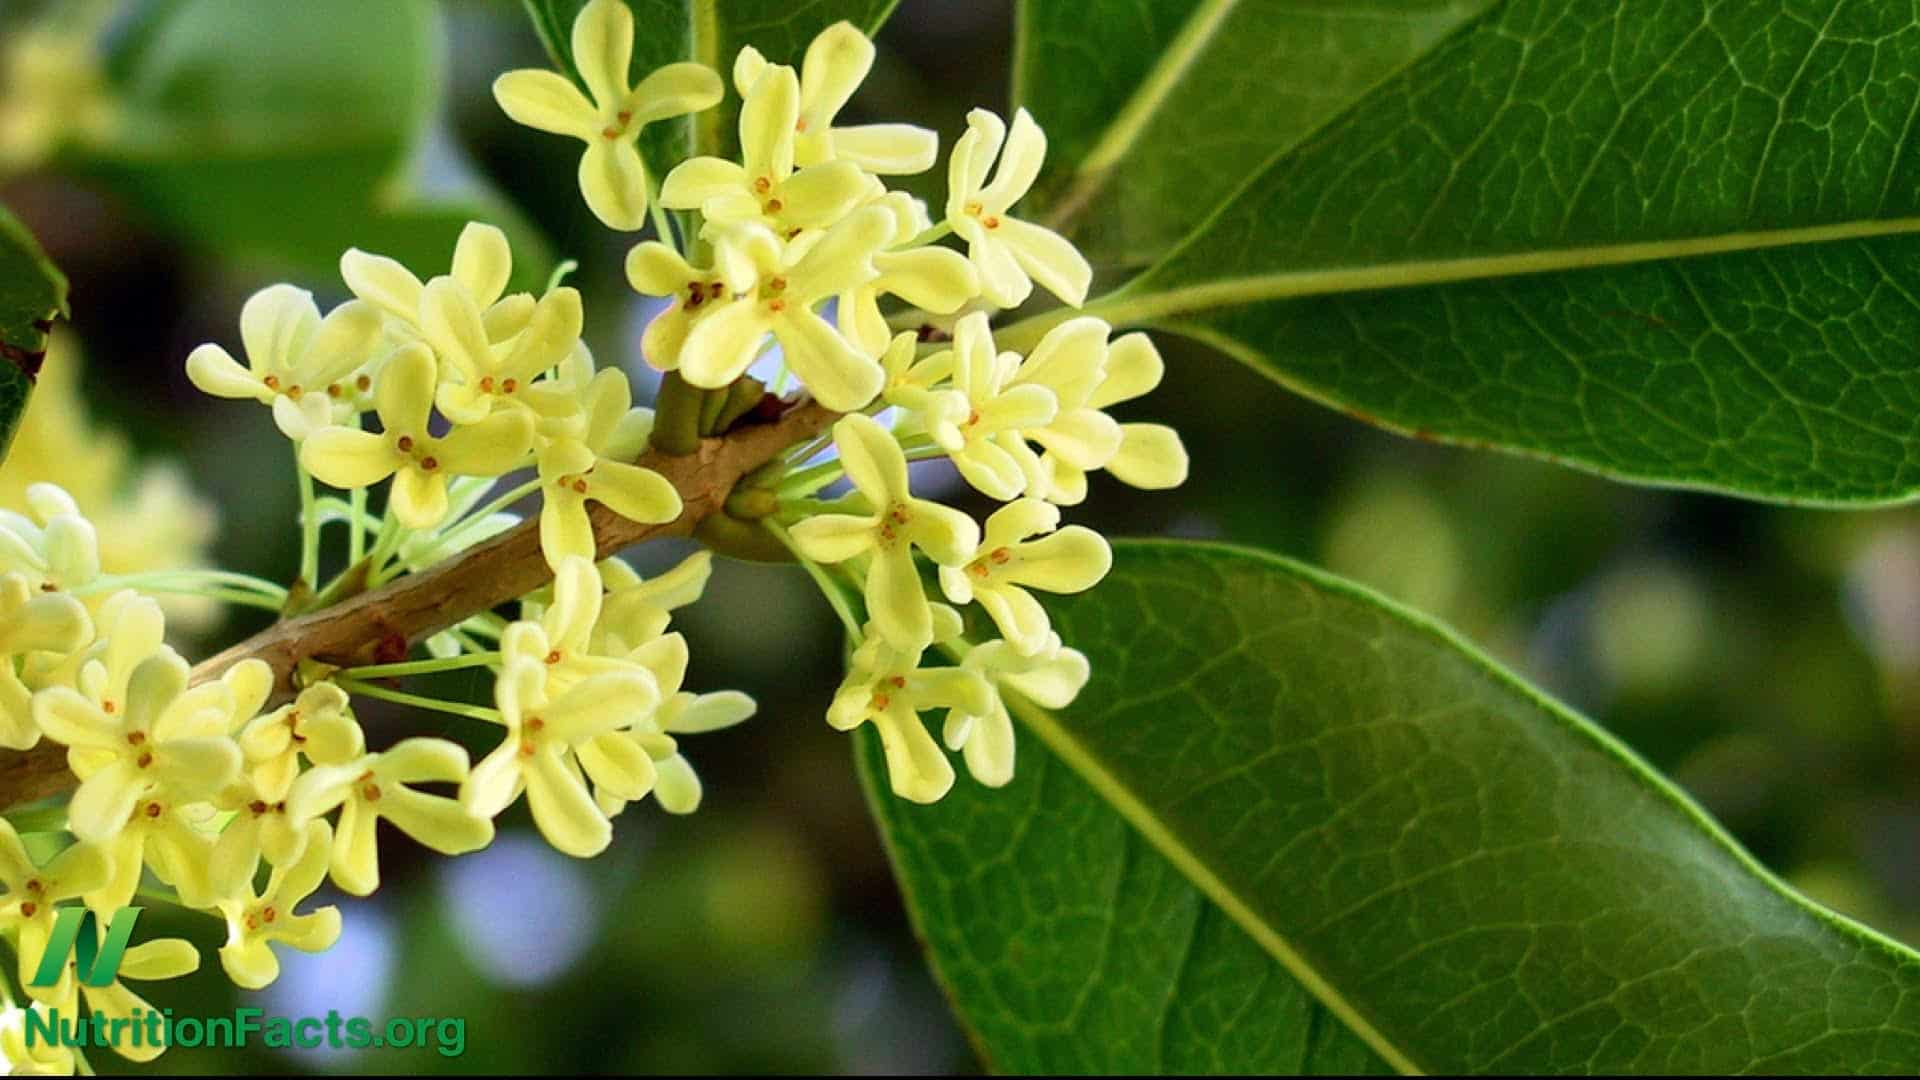 Is Osmanthus Tea Good For You?